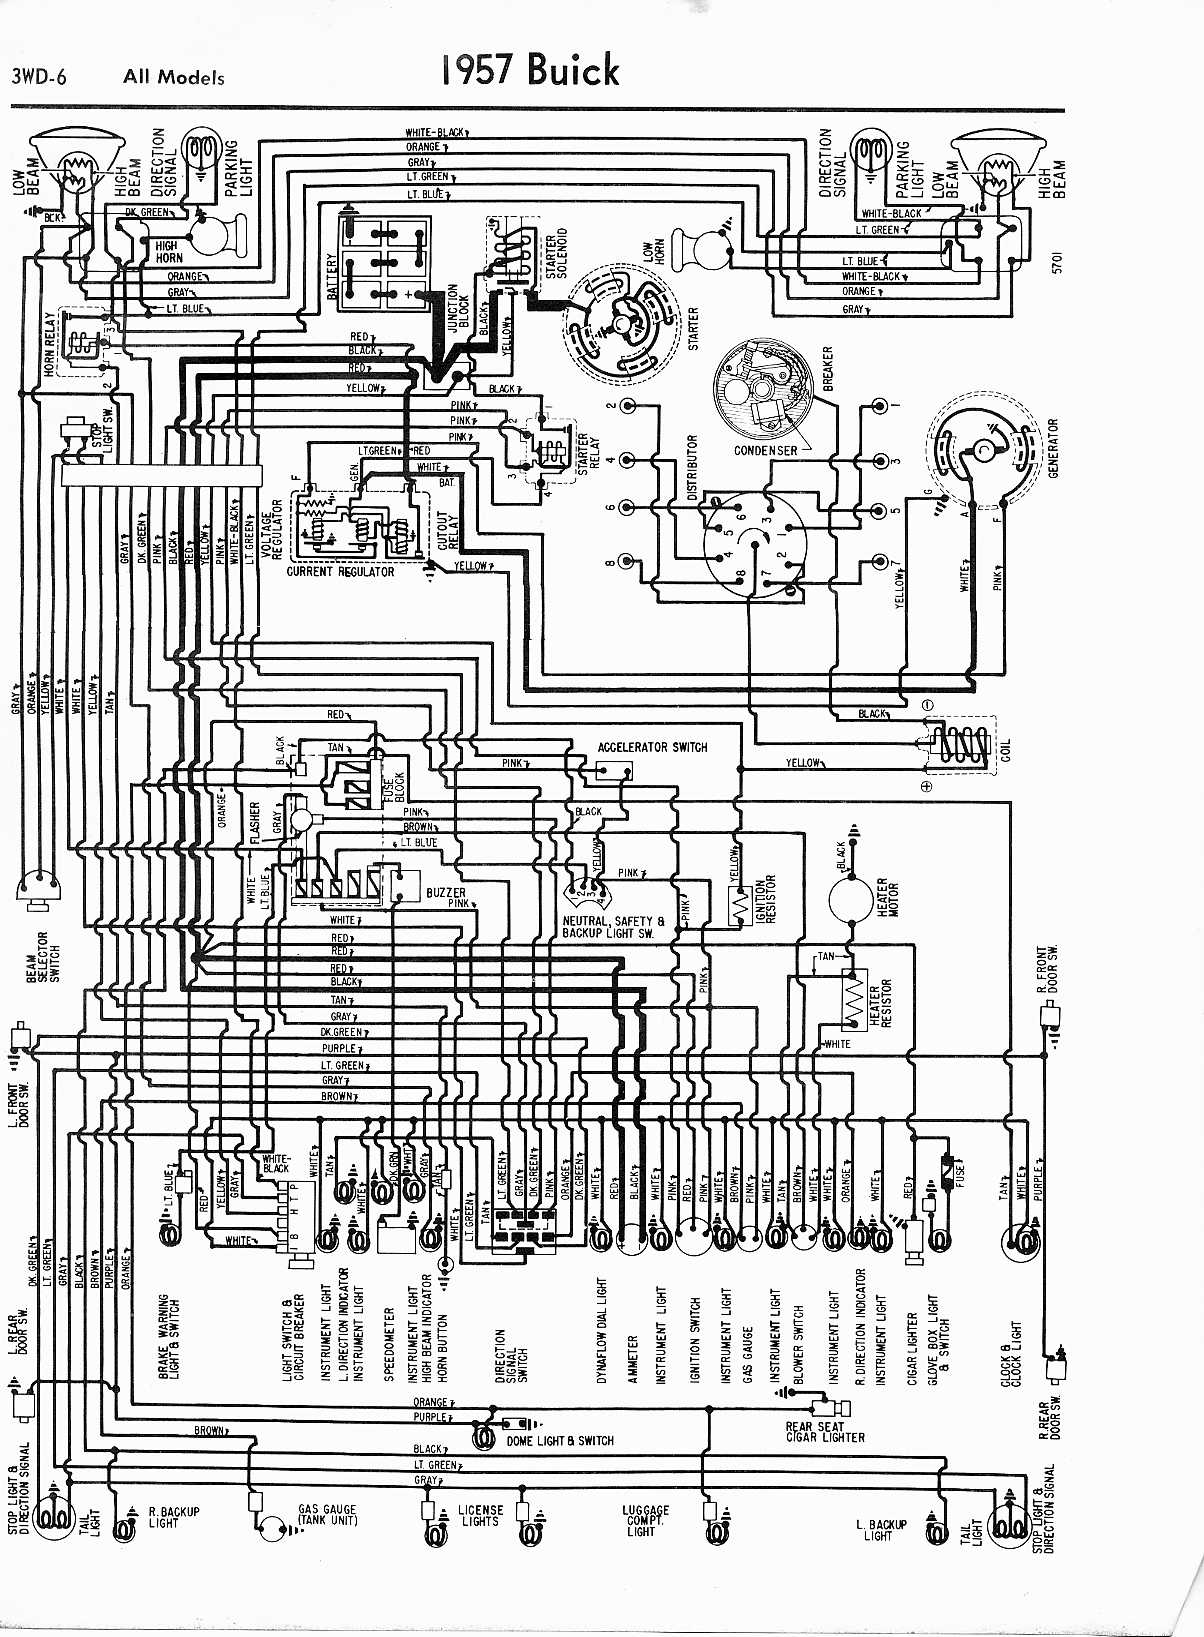 1970 buick gs wiring diagram all wiring diagram buick wiring diagrams 1957 1965 1967 firebird convertible 1970 buick gs wiring diagram